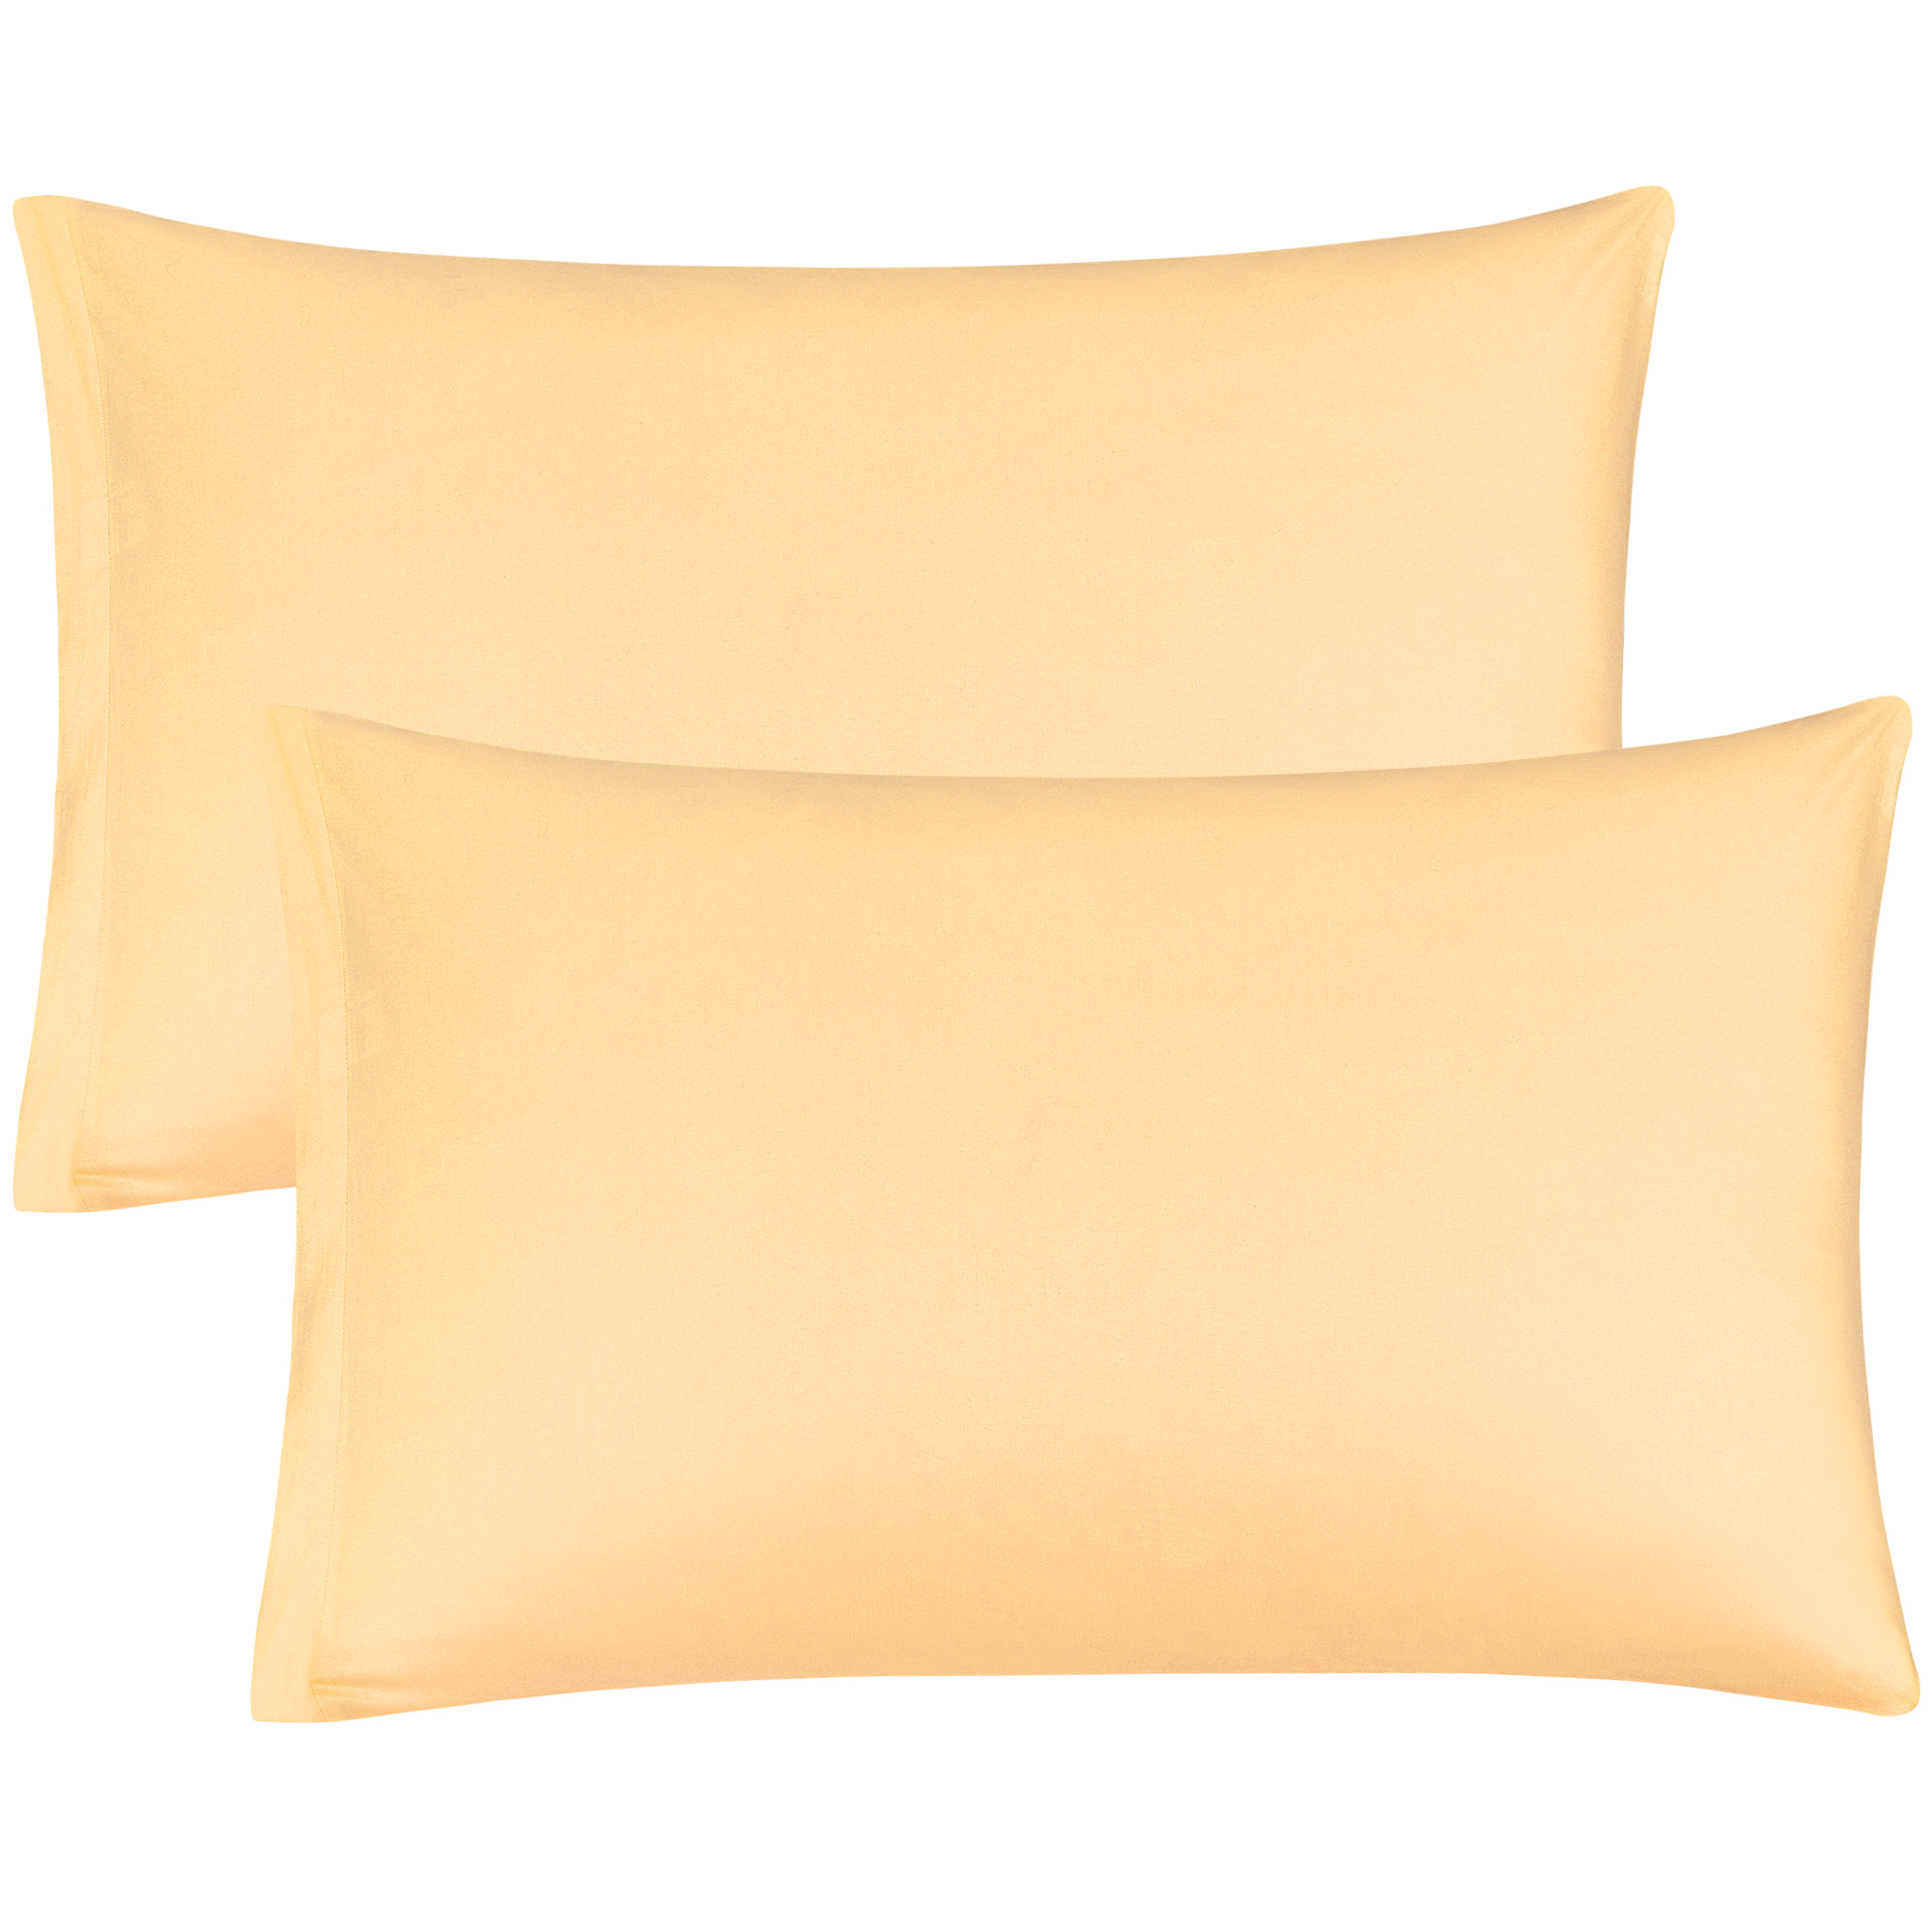 Zippered Cases Pillowcases Covers Egyptian Cotton 2-Pack (20 x 36 Inch, Yellow)